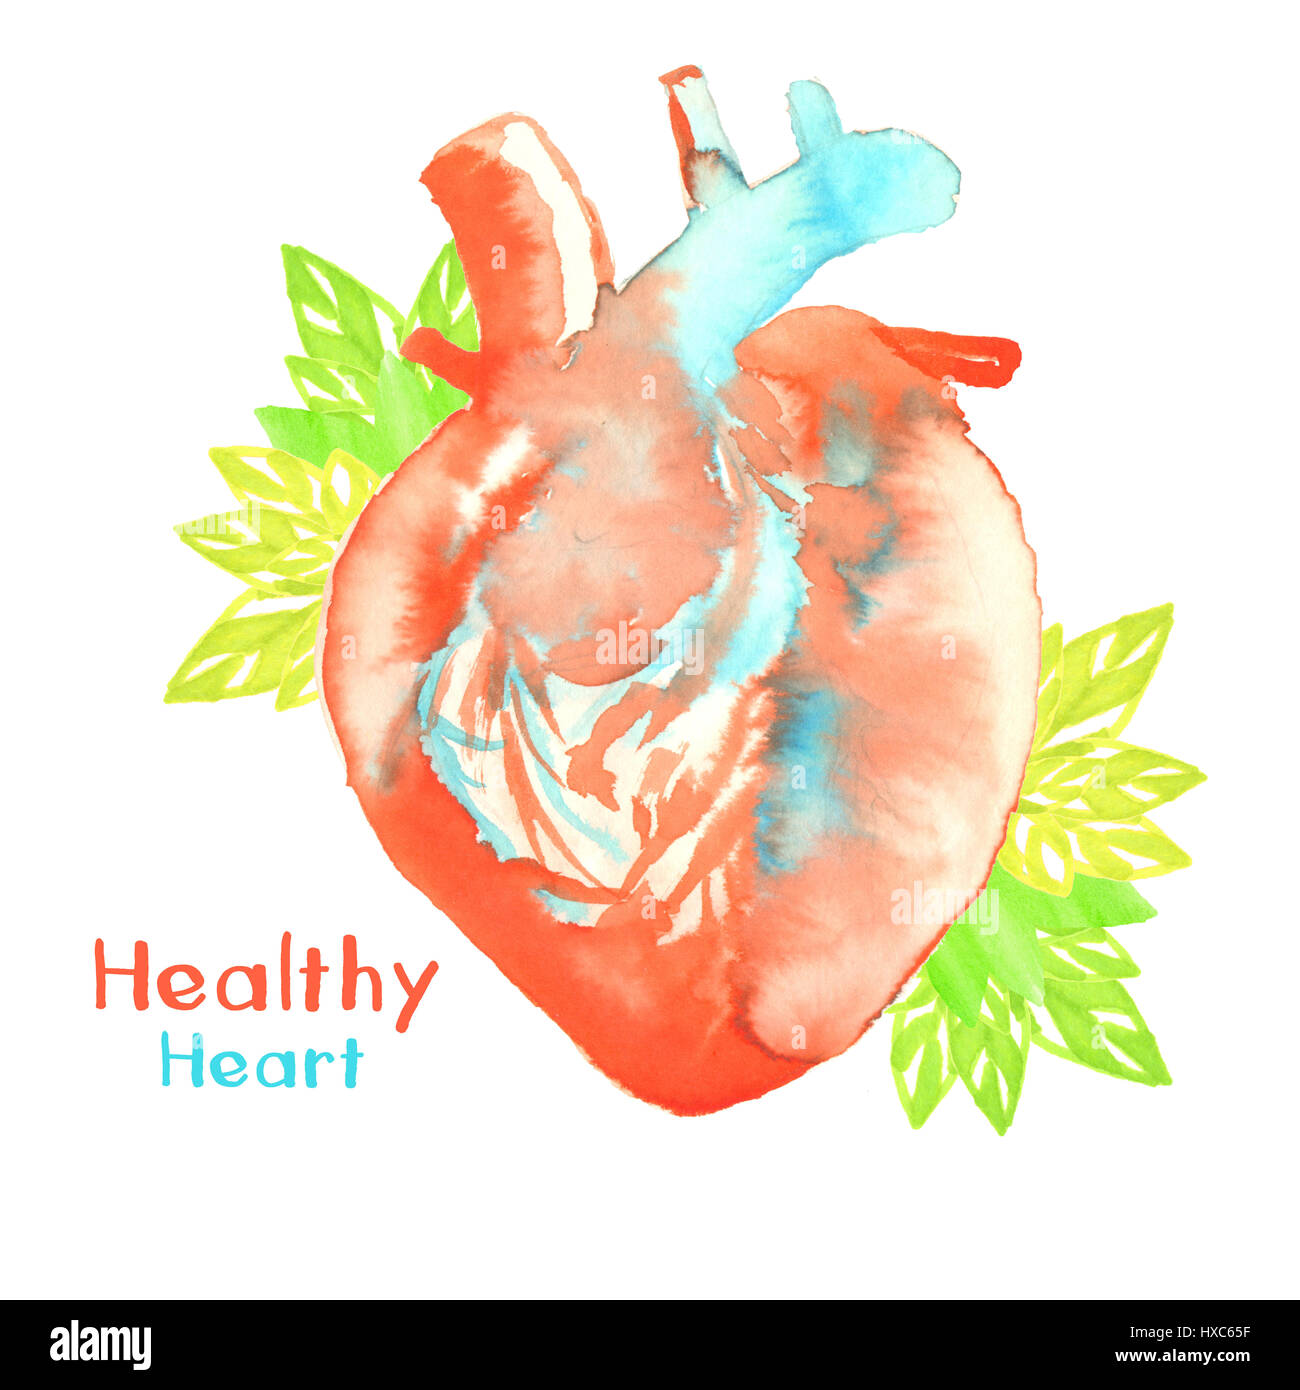 watercolor illustration of healthy heart - Stock Image